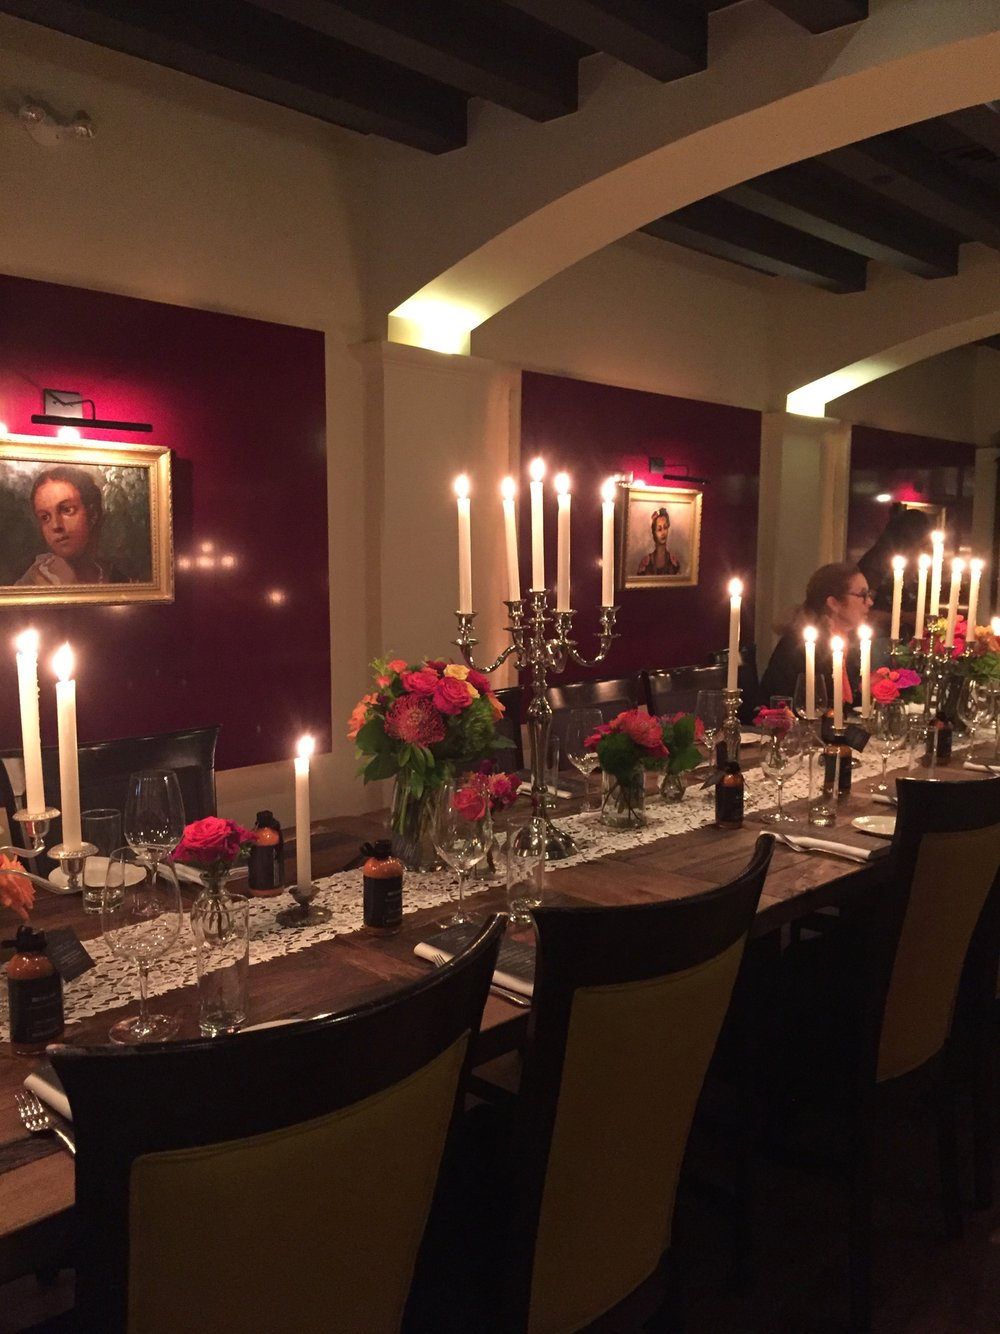 Light candles just before guests enter the dining room to create a warm welcoming effect.